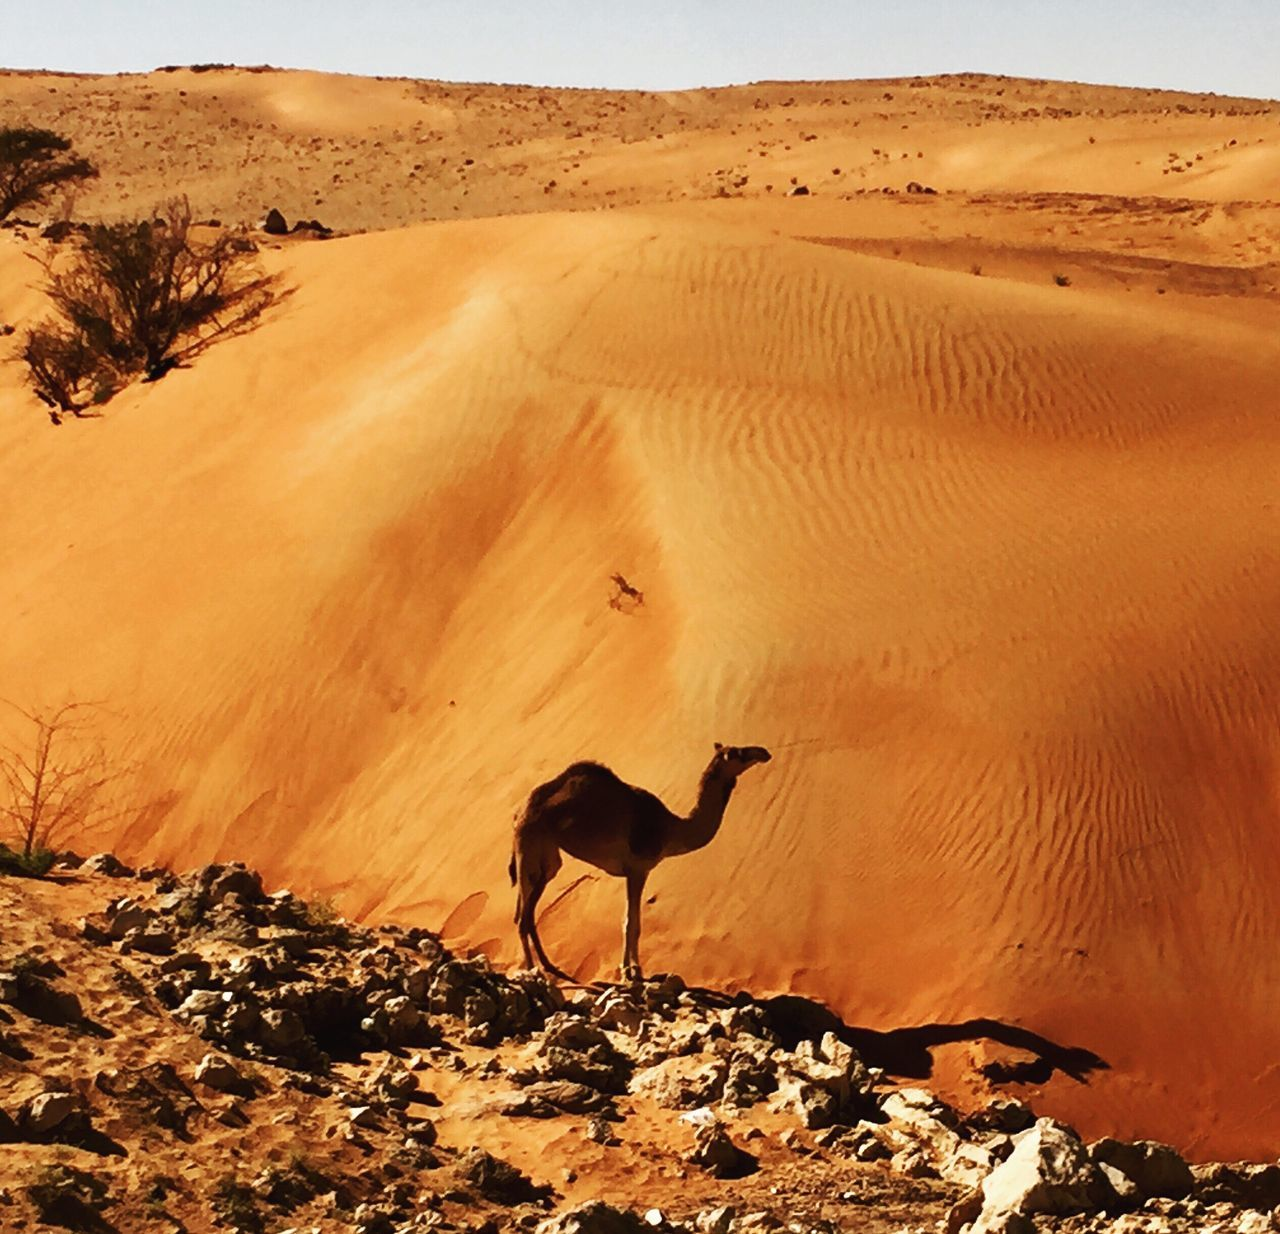 Nature Beauty In Nature Arid Climate Scenics Outdoors Day Animal Themes Sand Dune Tranquil Scene Landscape Photography Beautiful Animal Camel Desert Sand Wildlife Wildlife & Nature Trip